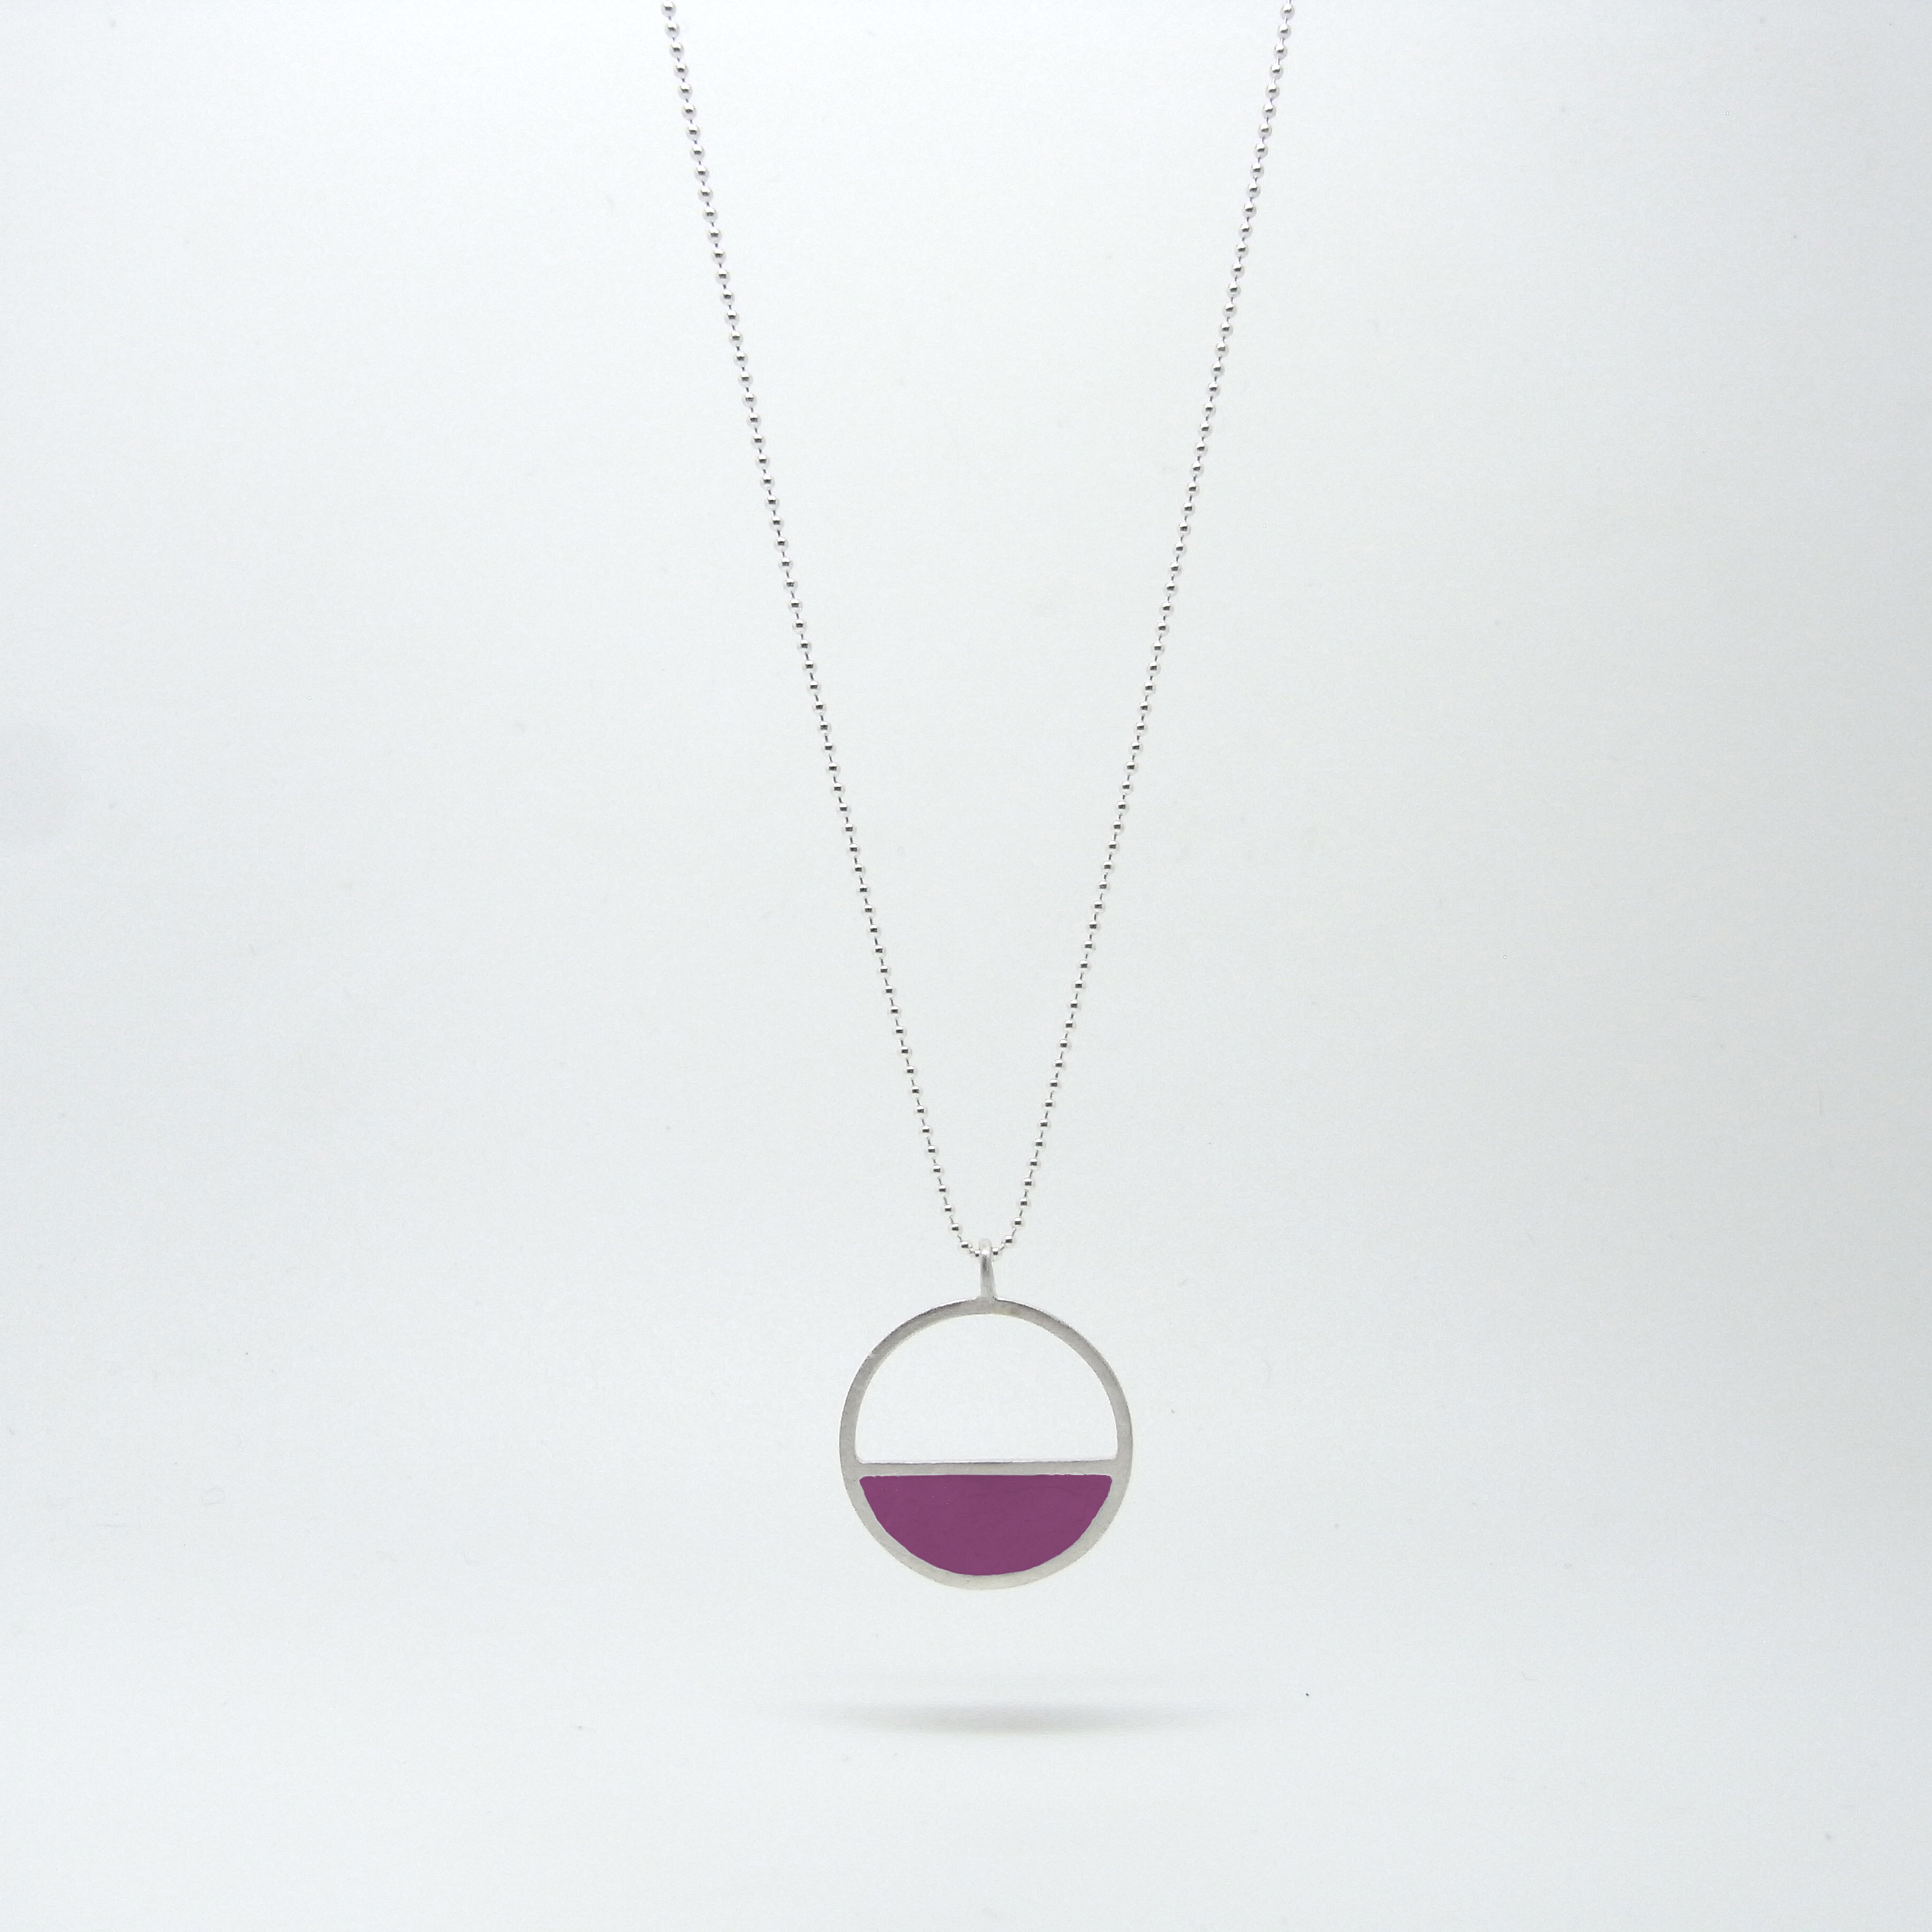 SALE - Semi Circle Necklace Lollipop